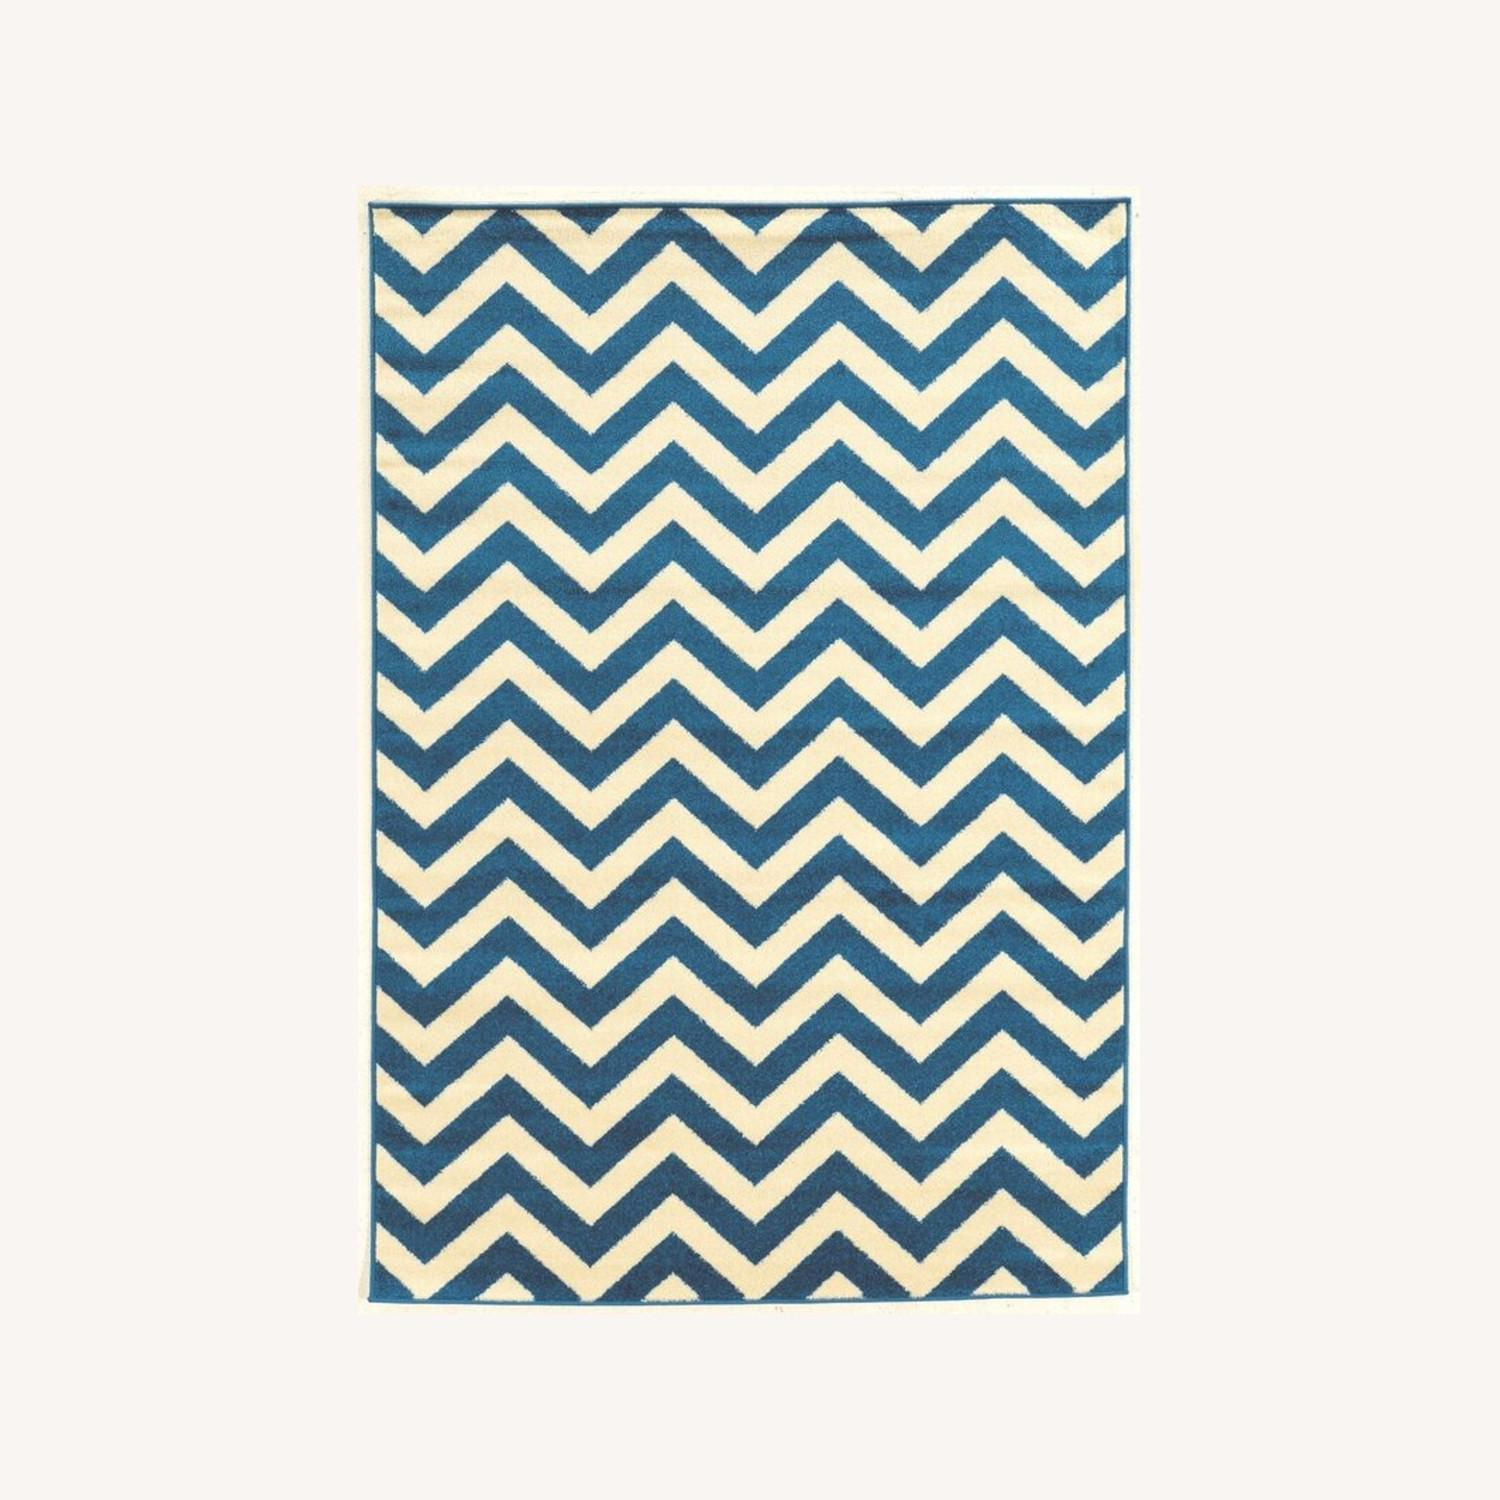 Wayfair Large Chevron Rug - image-0